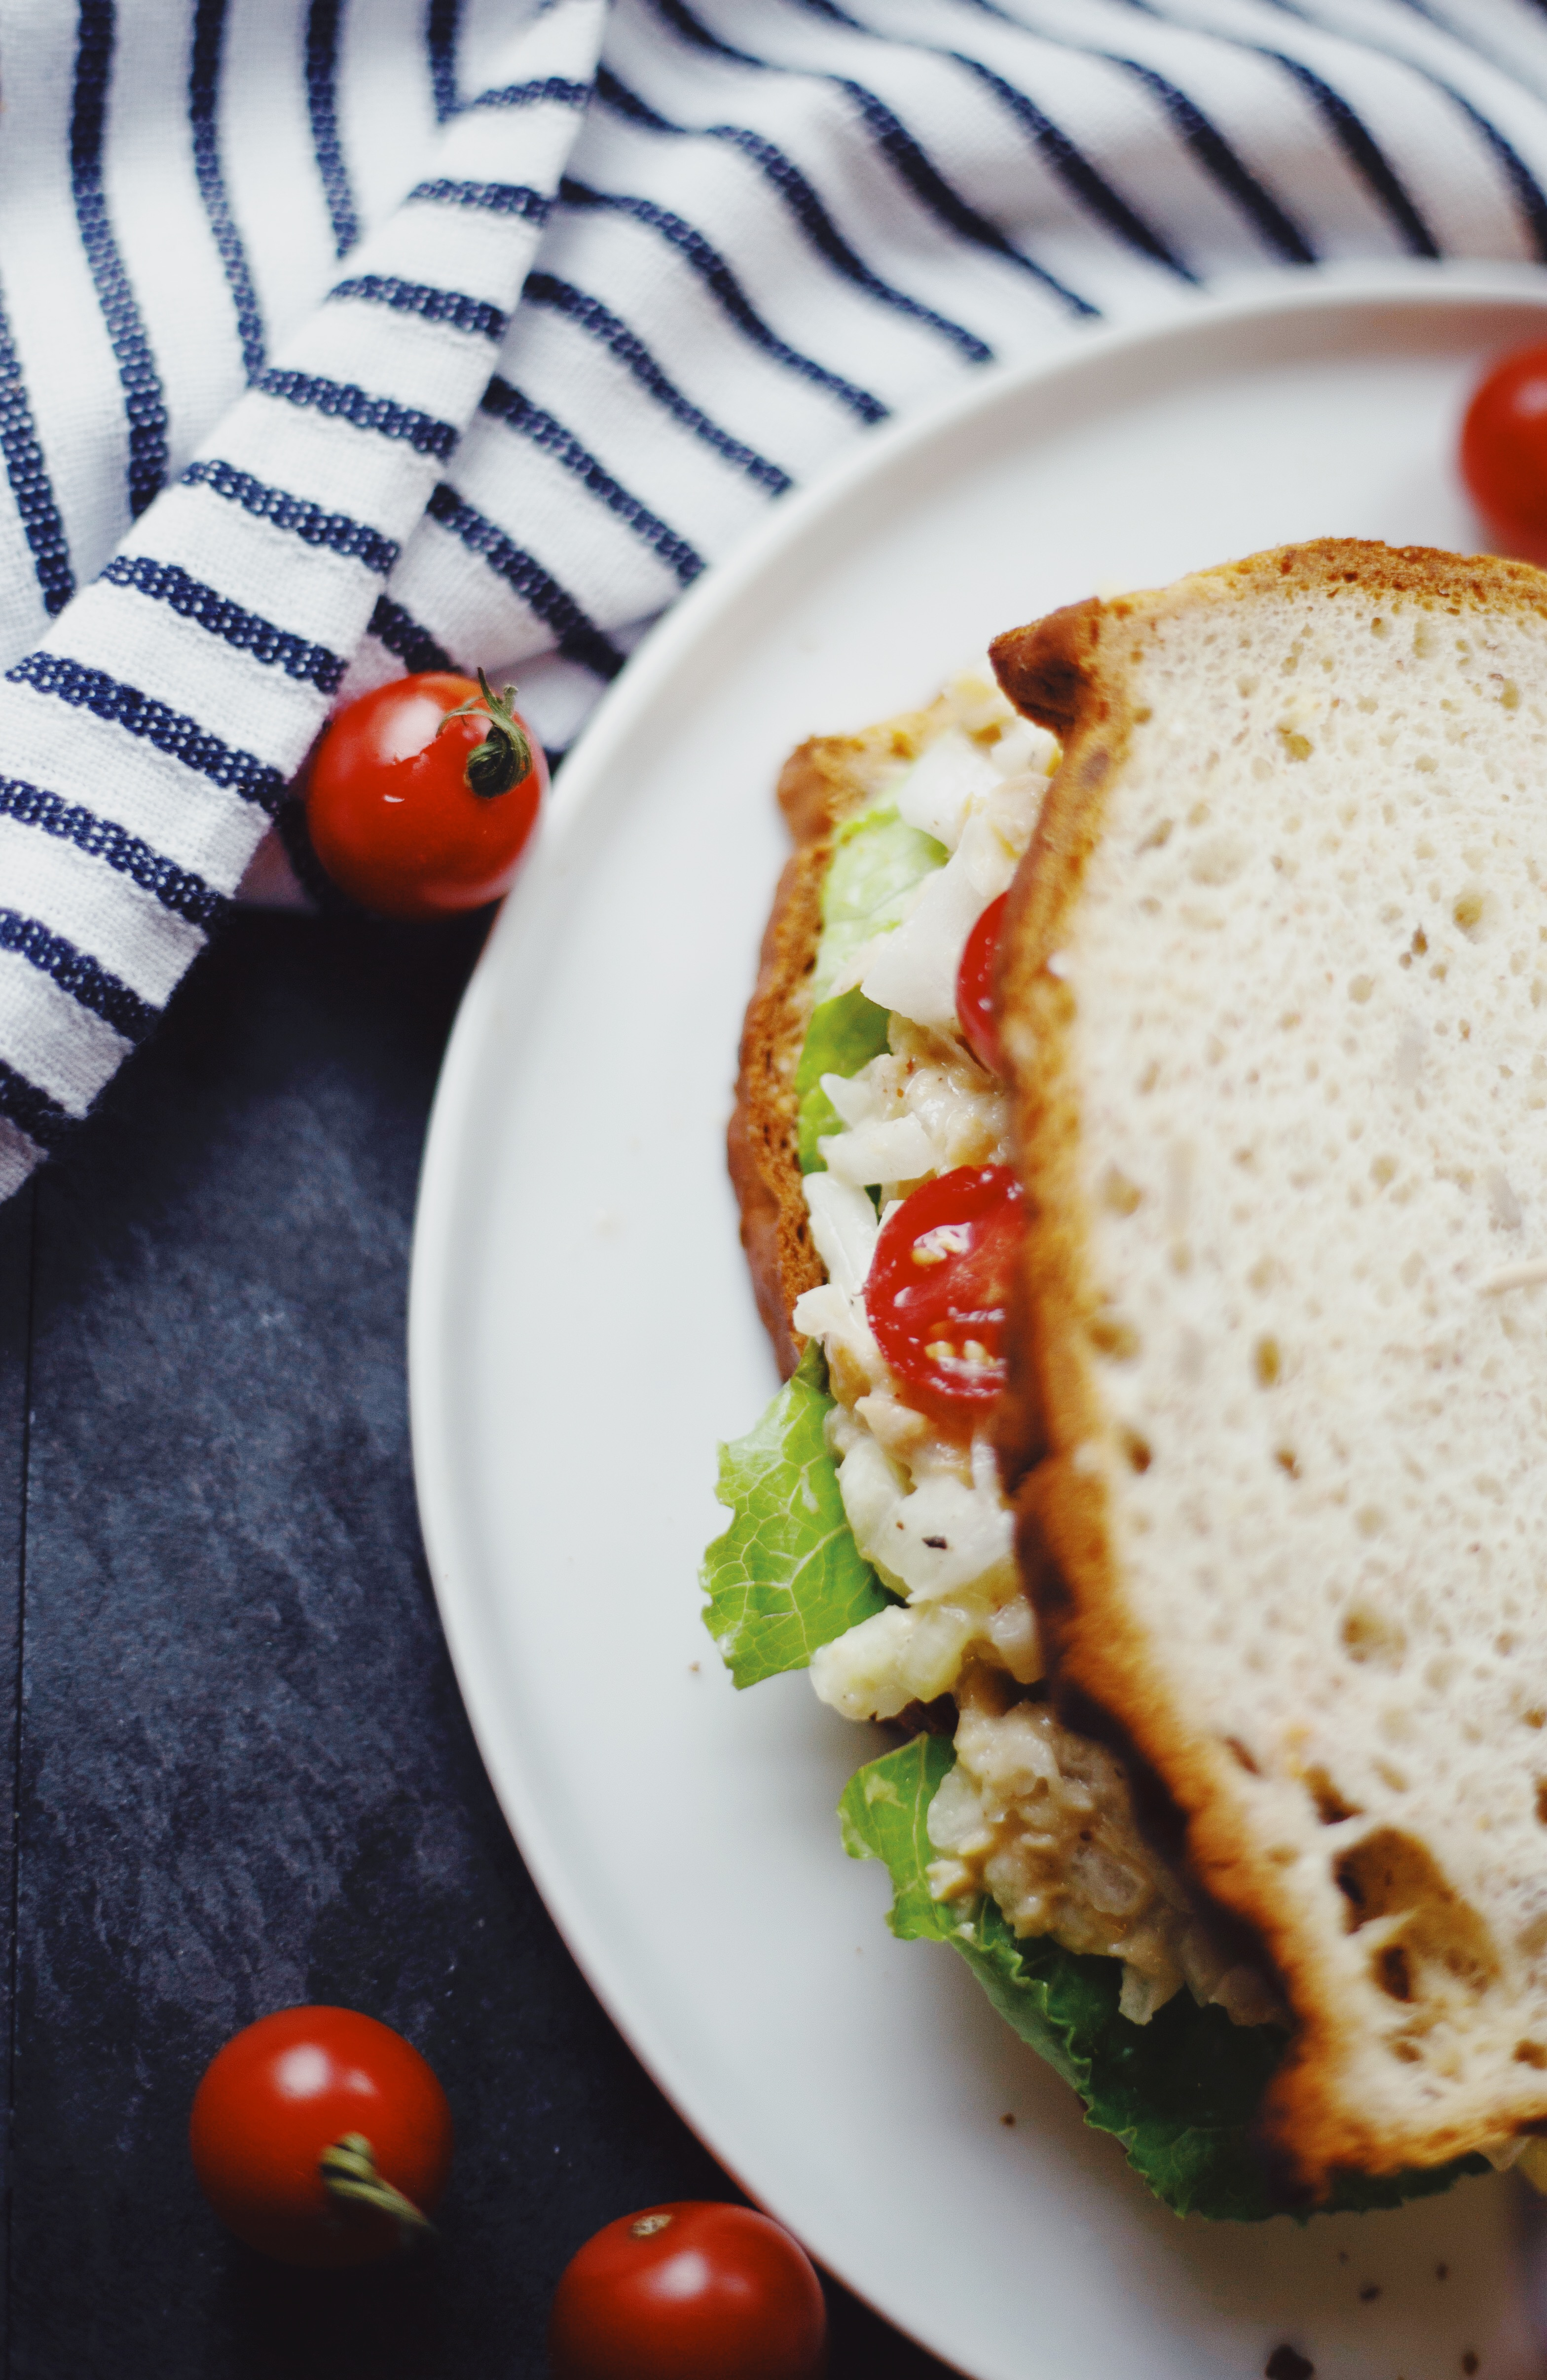 Gluten Free and Vegan Chickpea Salad Sandwich with tomatoes and lettuce